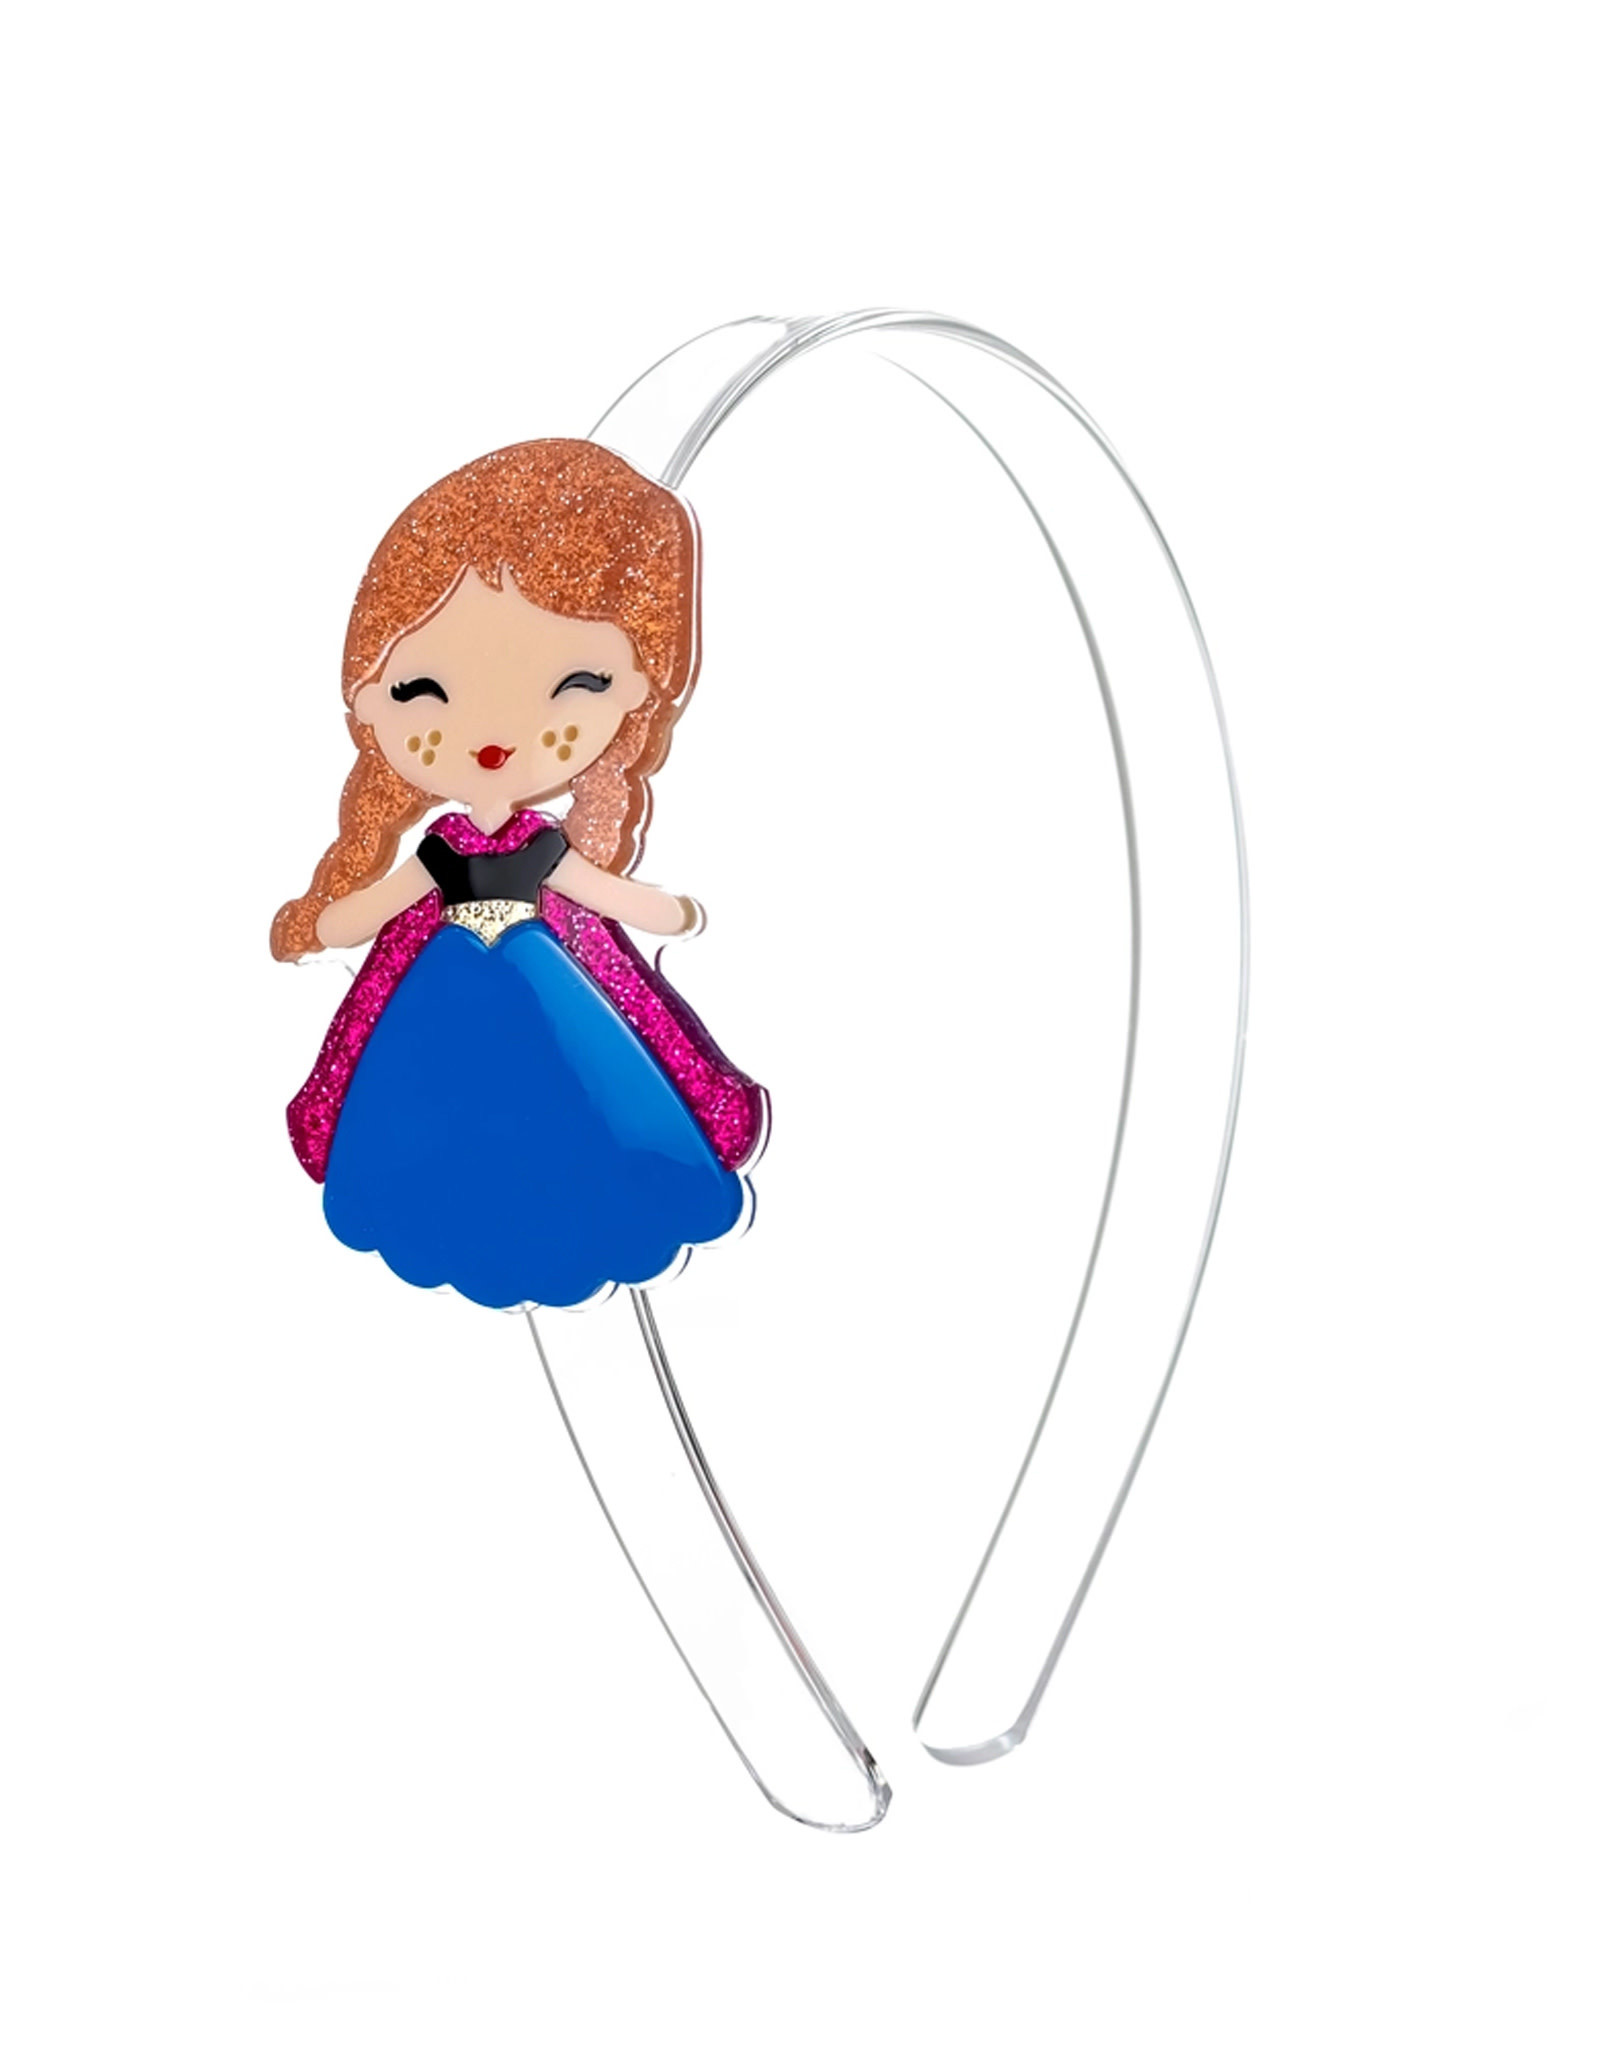 Lillies & Roses Headband Cute Doll with Freckles (Blue Dress)